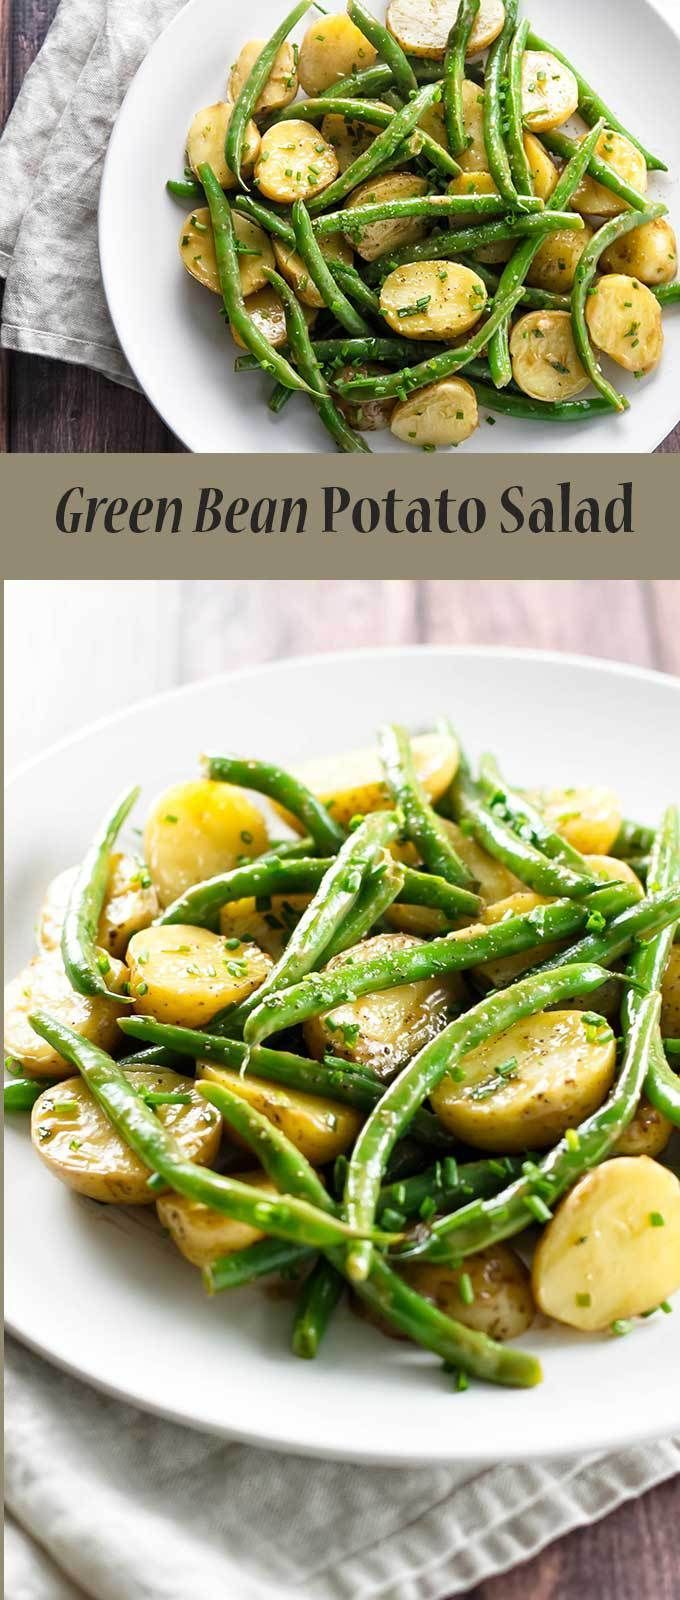 Green Bean Potato Salad is the perfect side dish for any season | http://girlgonegourmet.com